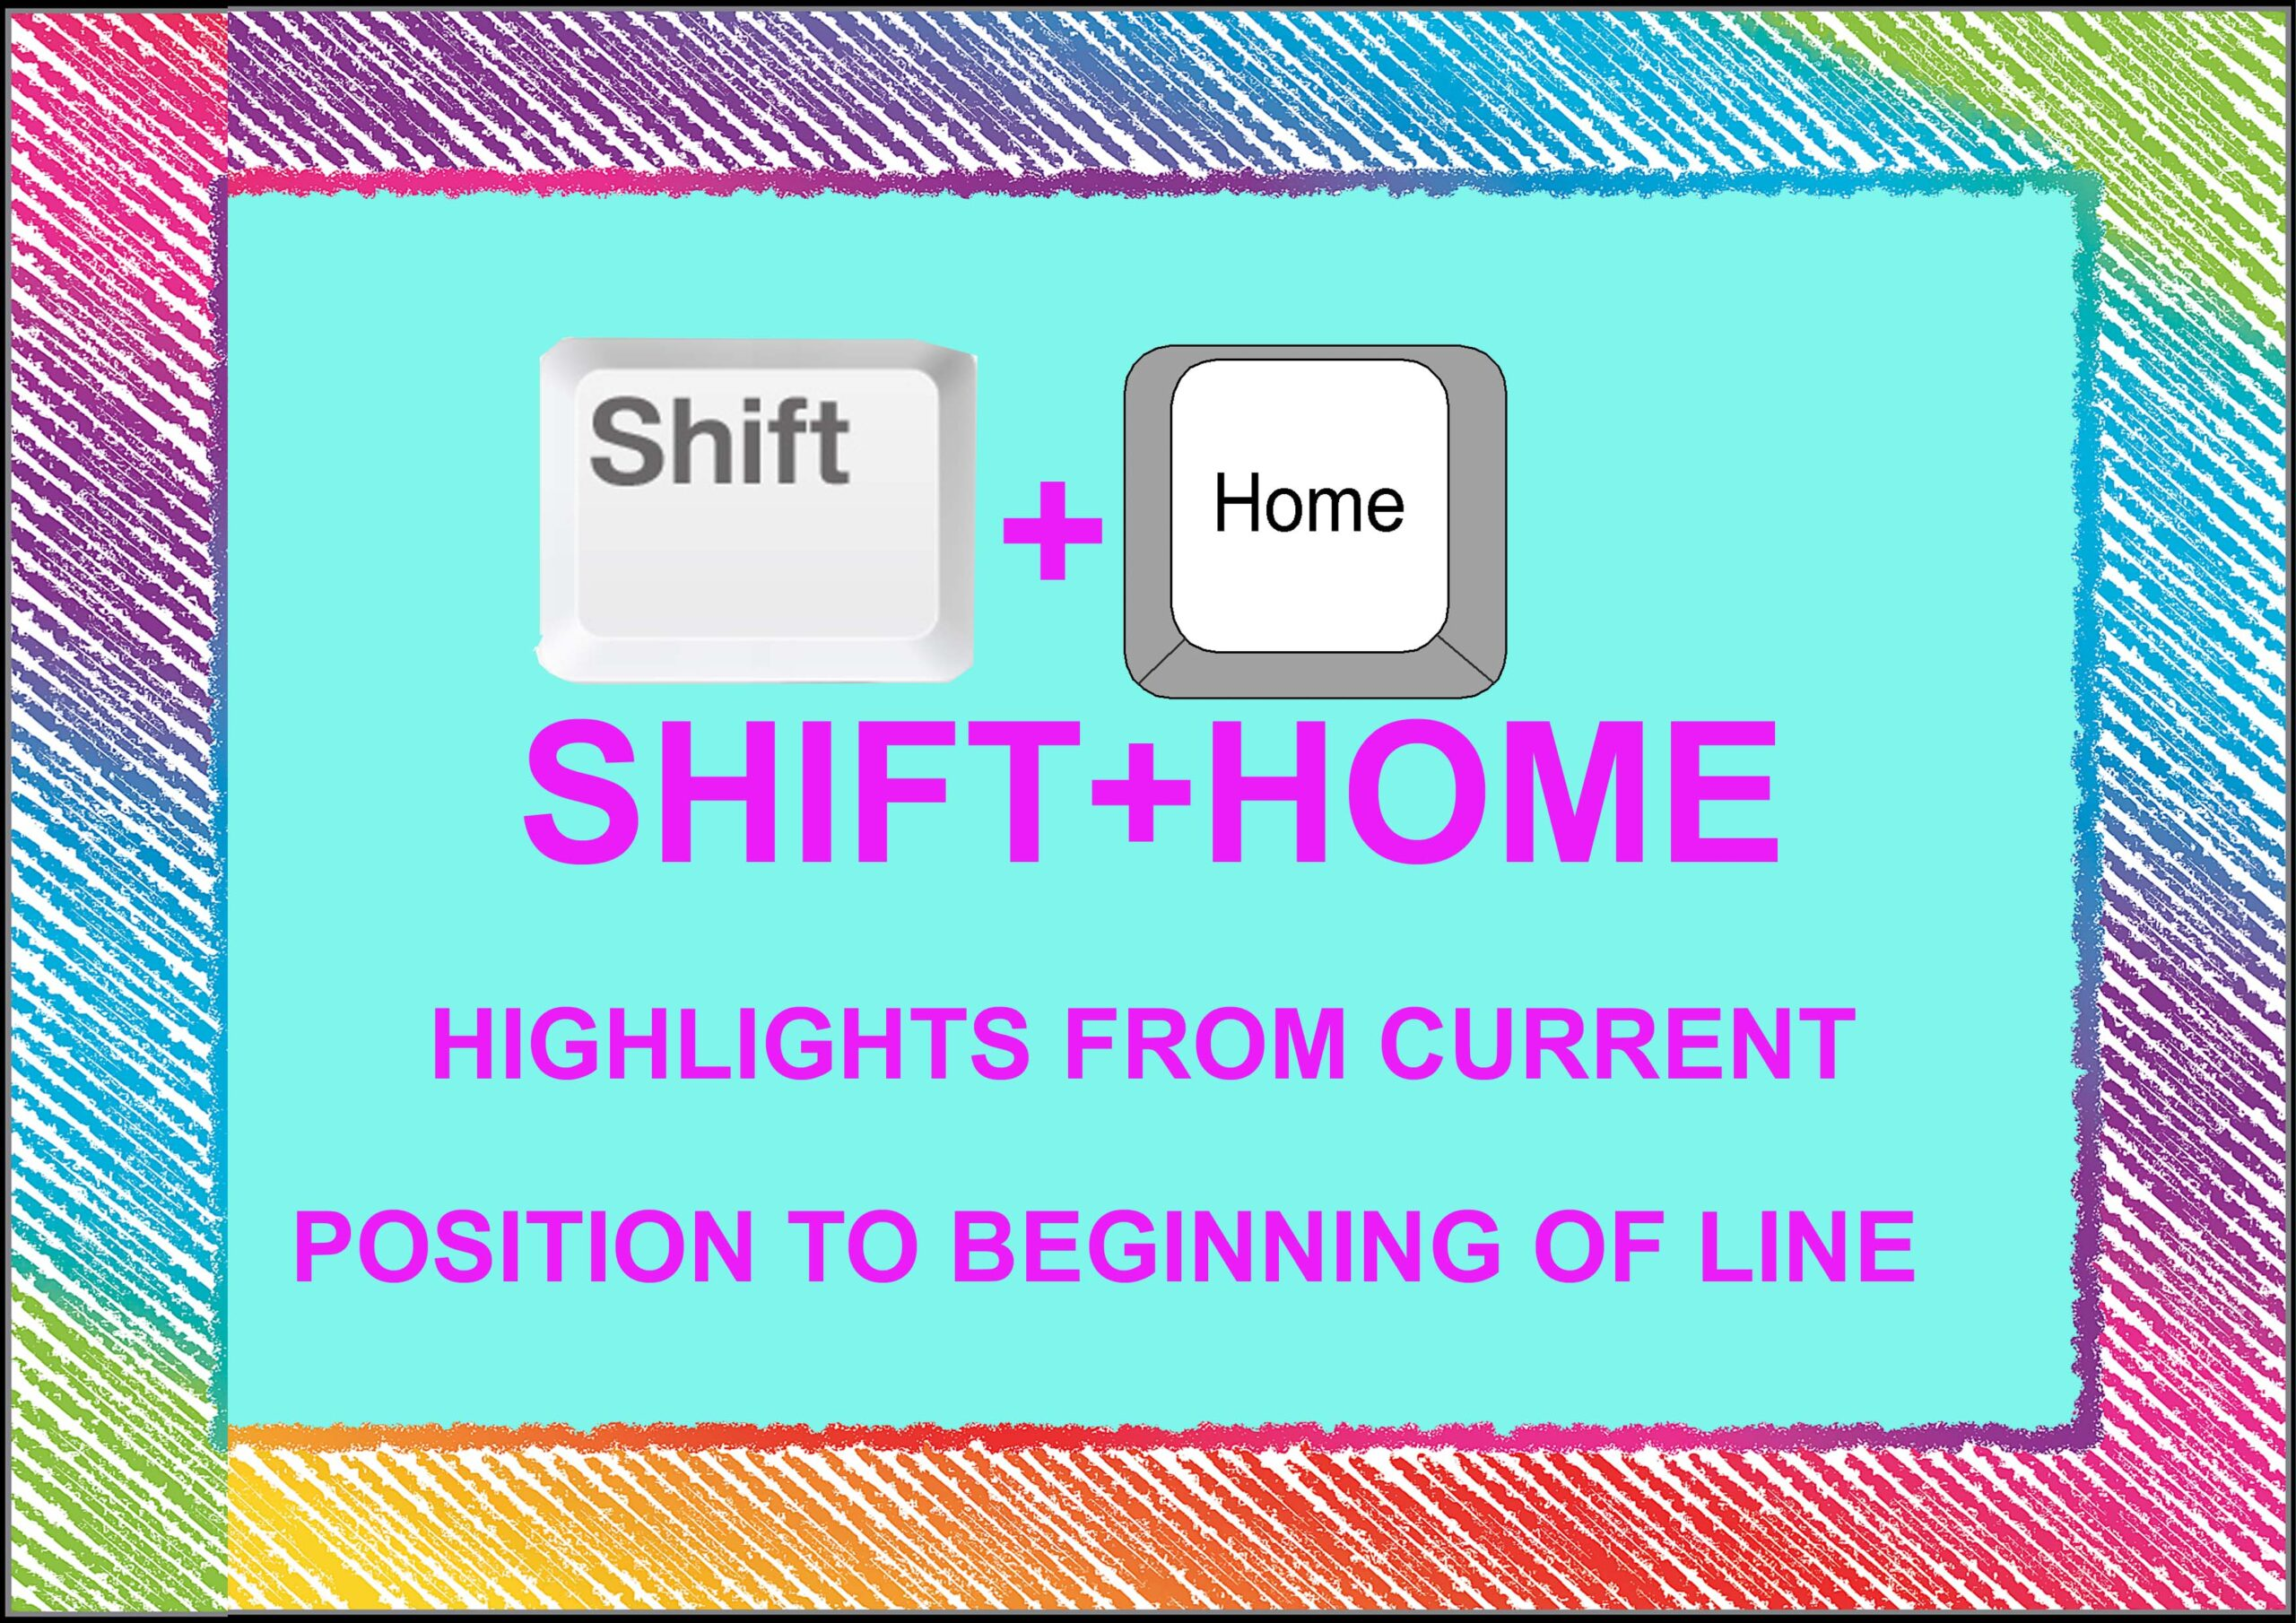 Shift+ Home= Highlights From Current Position to beinning of Line